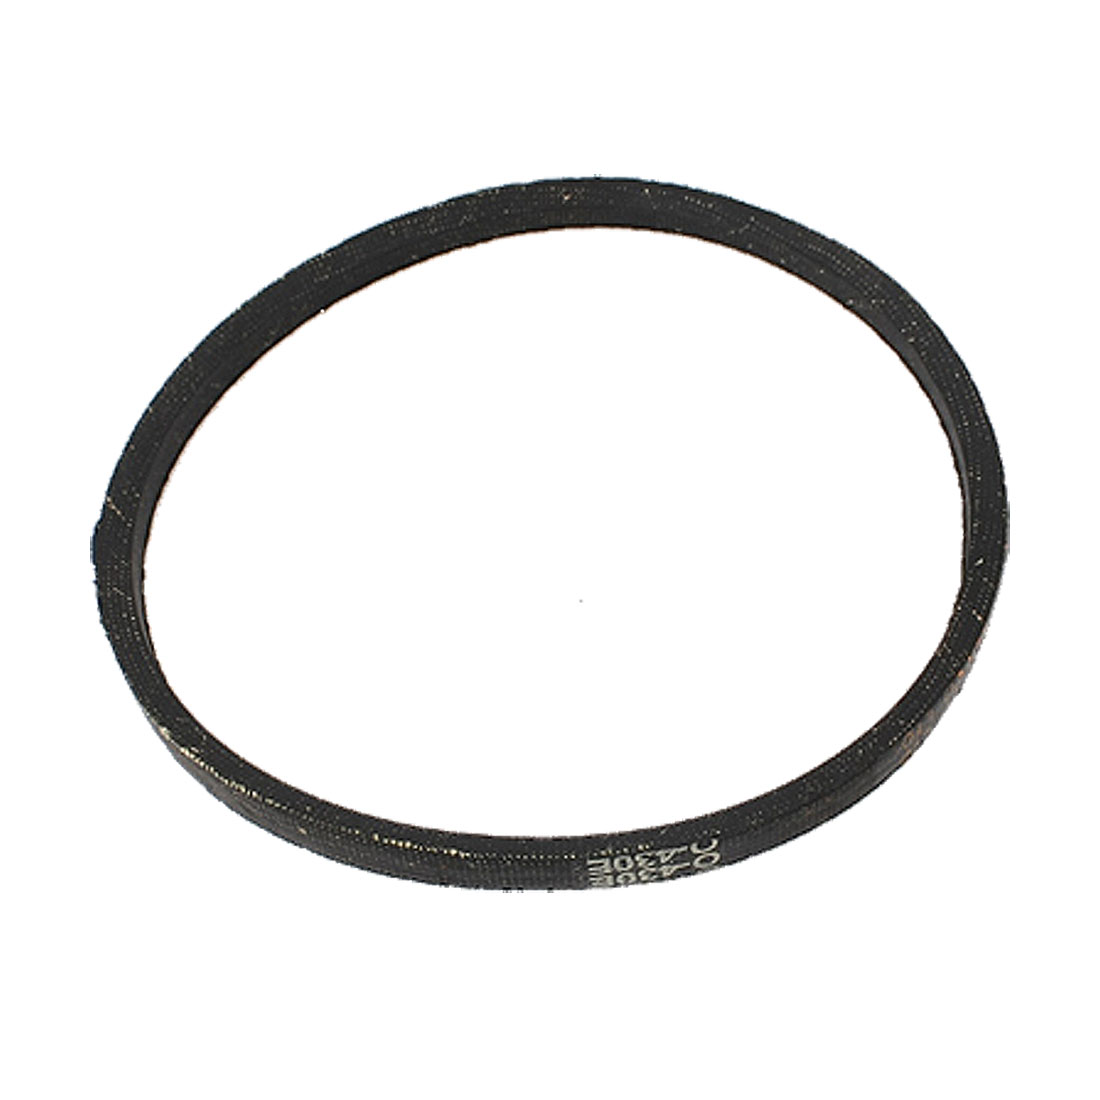 "Washing Machine Washer Repairing Rubber V Belt 430mm 17"" Inner Girth"